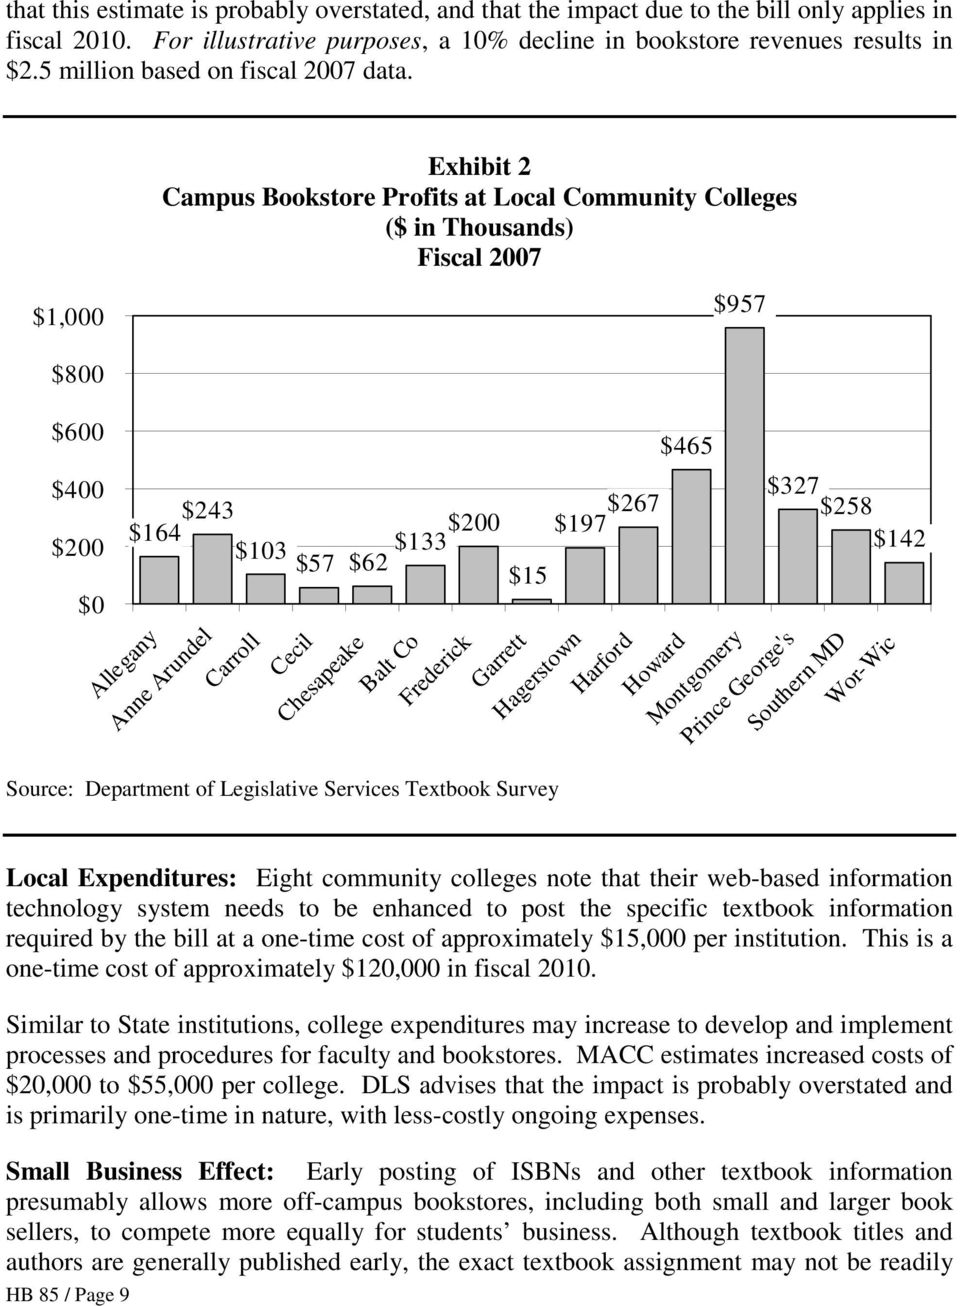 $1,000 Exhibit 2 Campus Bookstore Profits at Local Community Colleges ($ in Thousands) Fiscal 2007 $957 $800 $600 $400 $200 $164 $243 $103 $57 $62 $133 $200 $15 $197 $267 $465 $327 $258 $142 $0